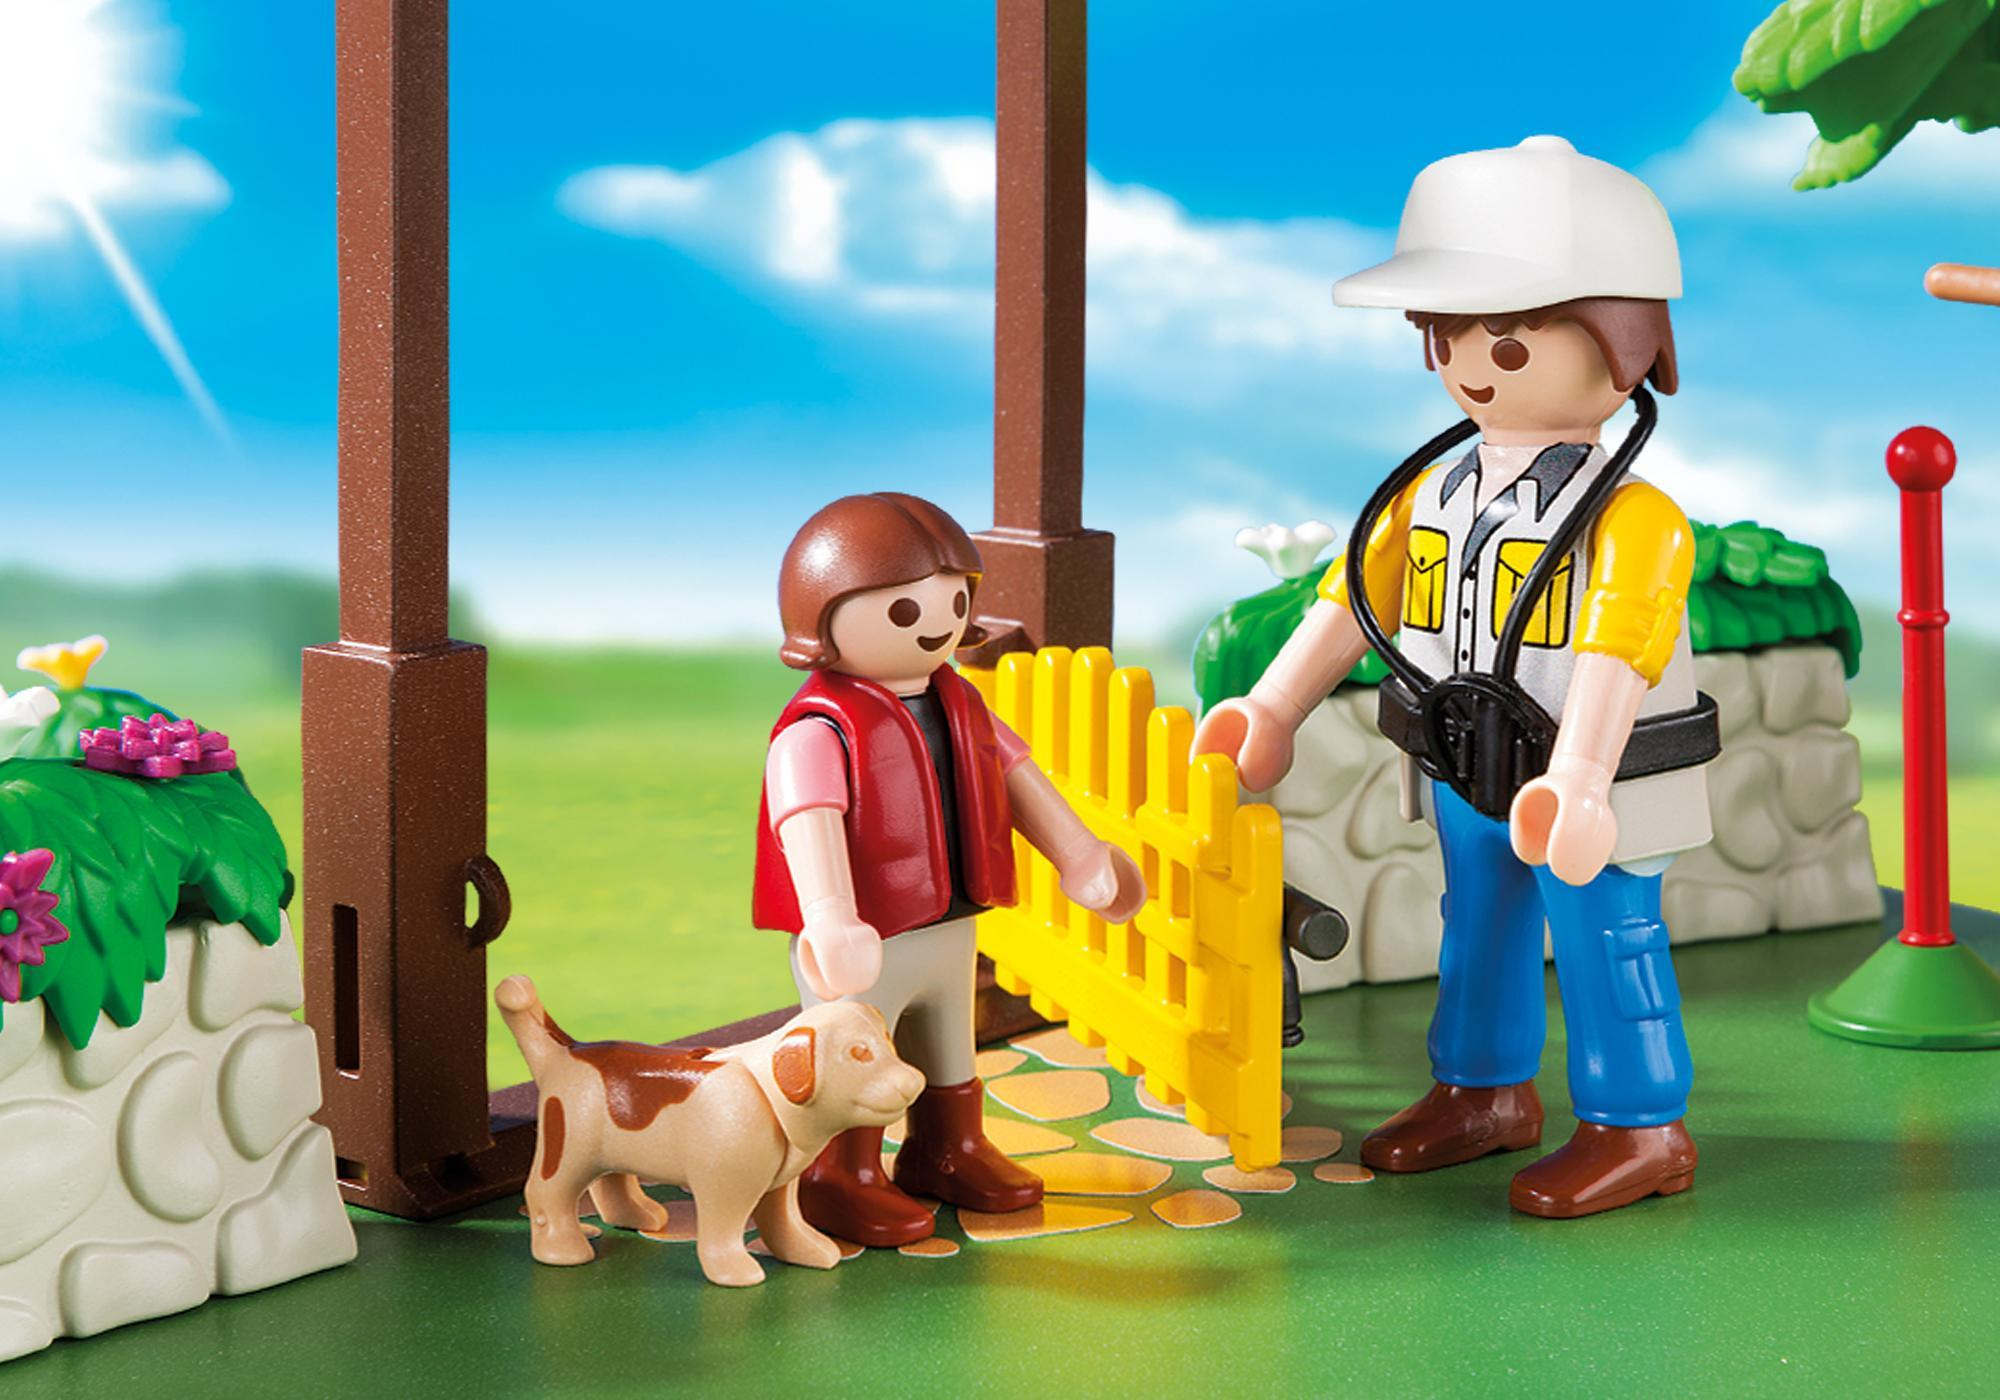 http://media.playmobil.com/i/playmobil/6145_product_extra1/SuperSet Hundeschule